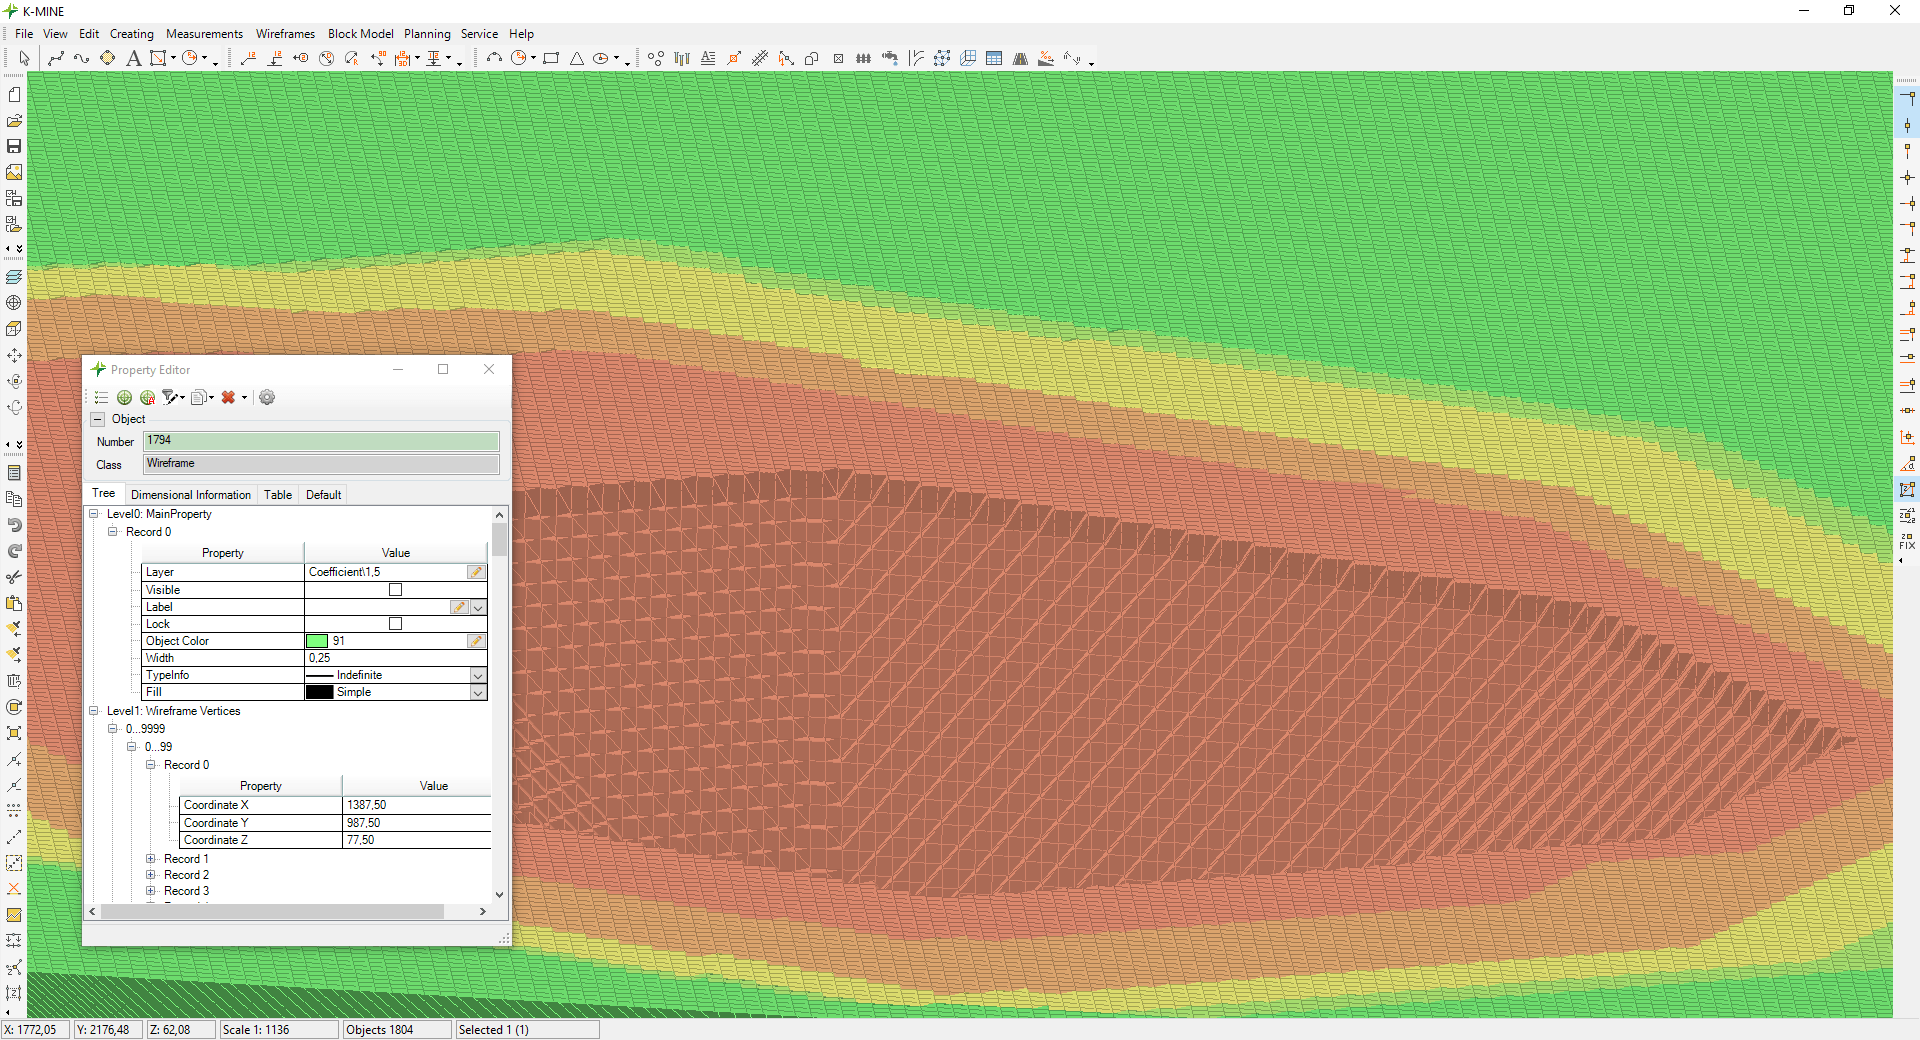 Visualization of open pit mining for calculated periods using wireframe surfaces